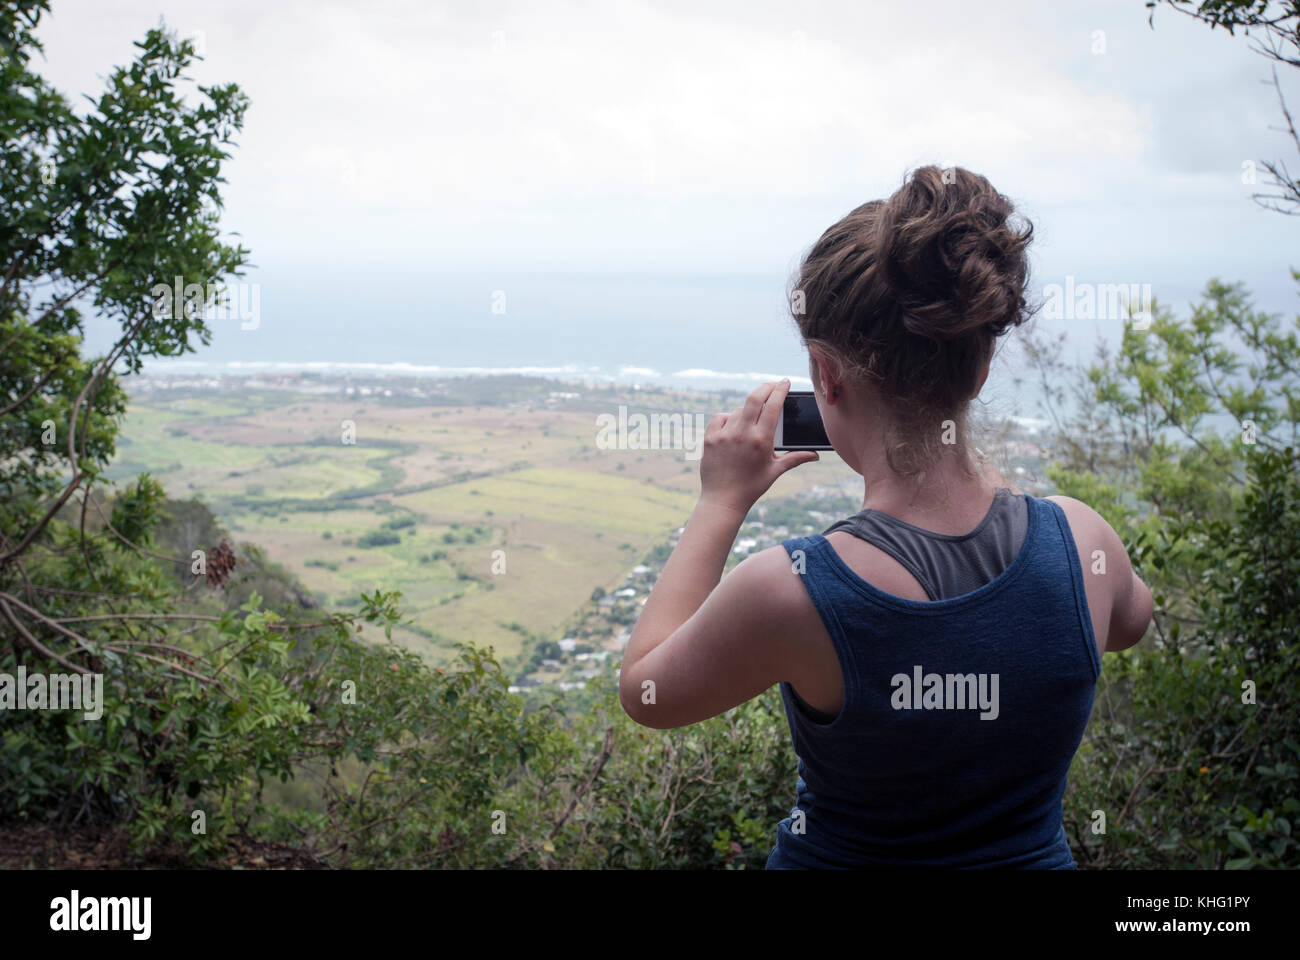 Teen girl taking picture with mobile phone - Stock Image